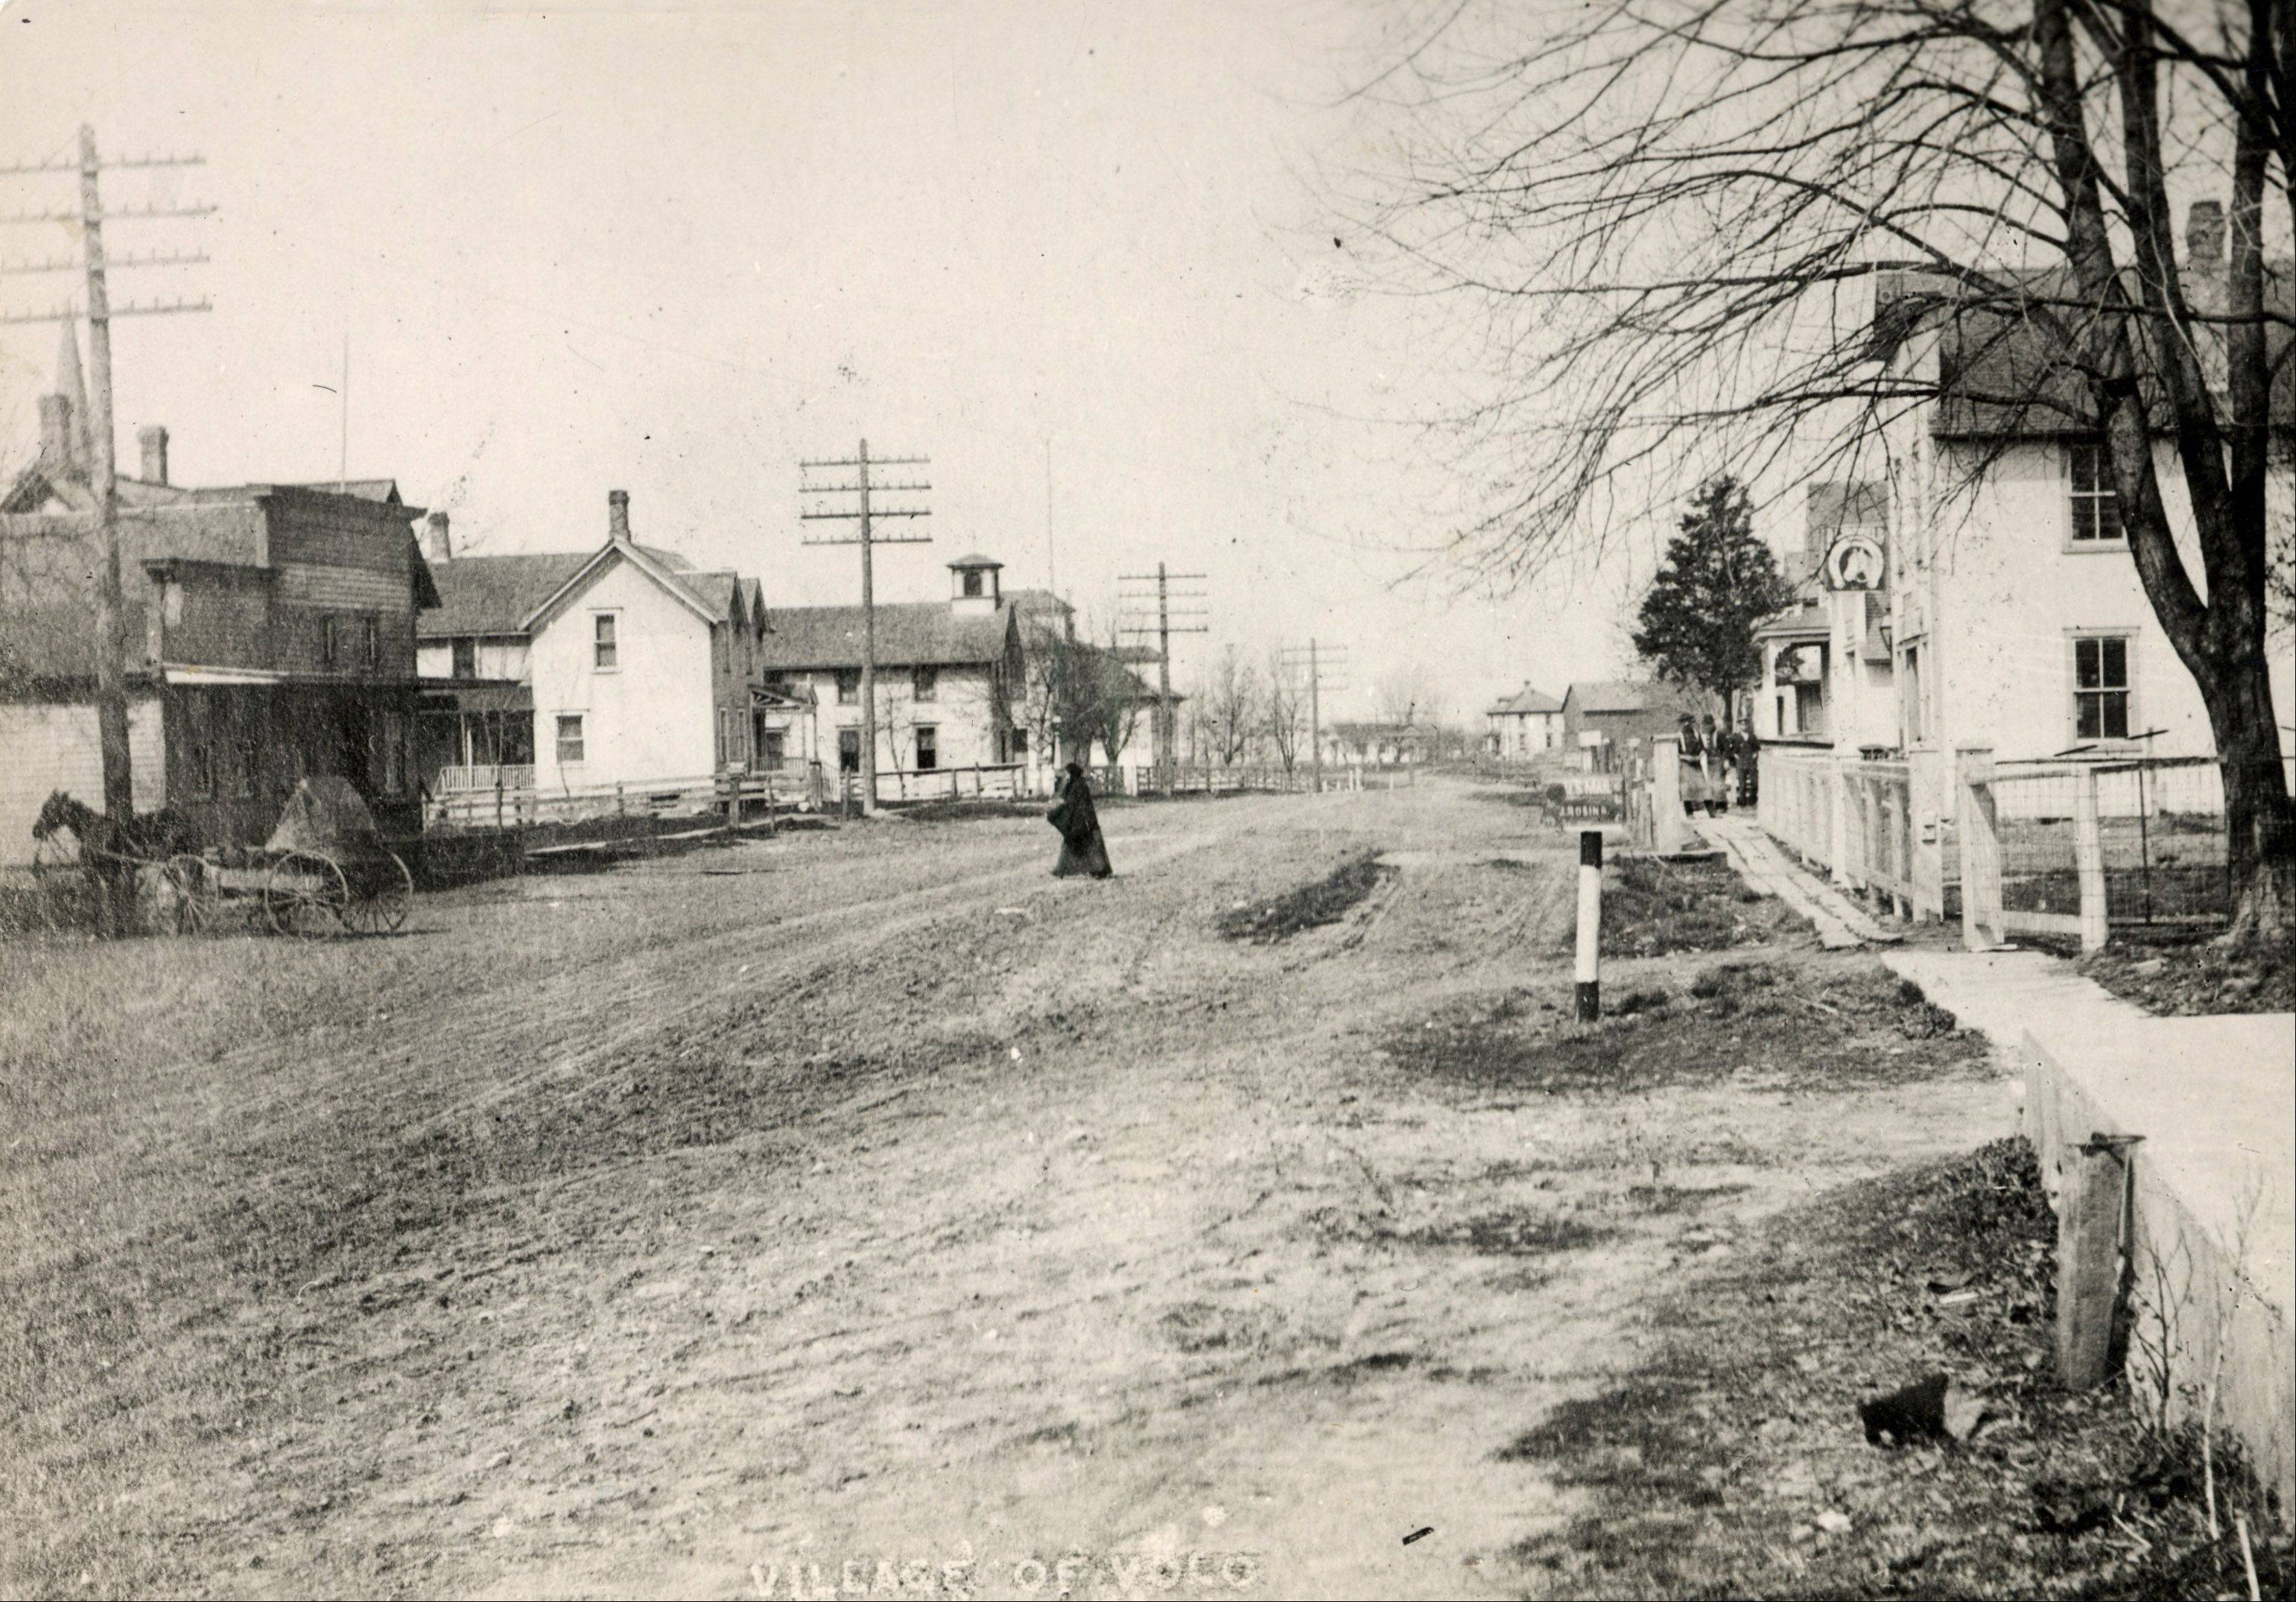 A vintage photo of Main Street in Volo.